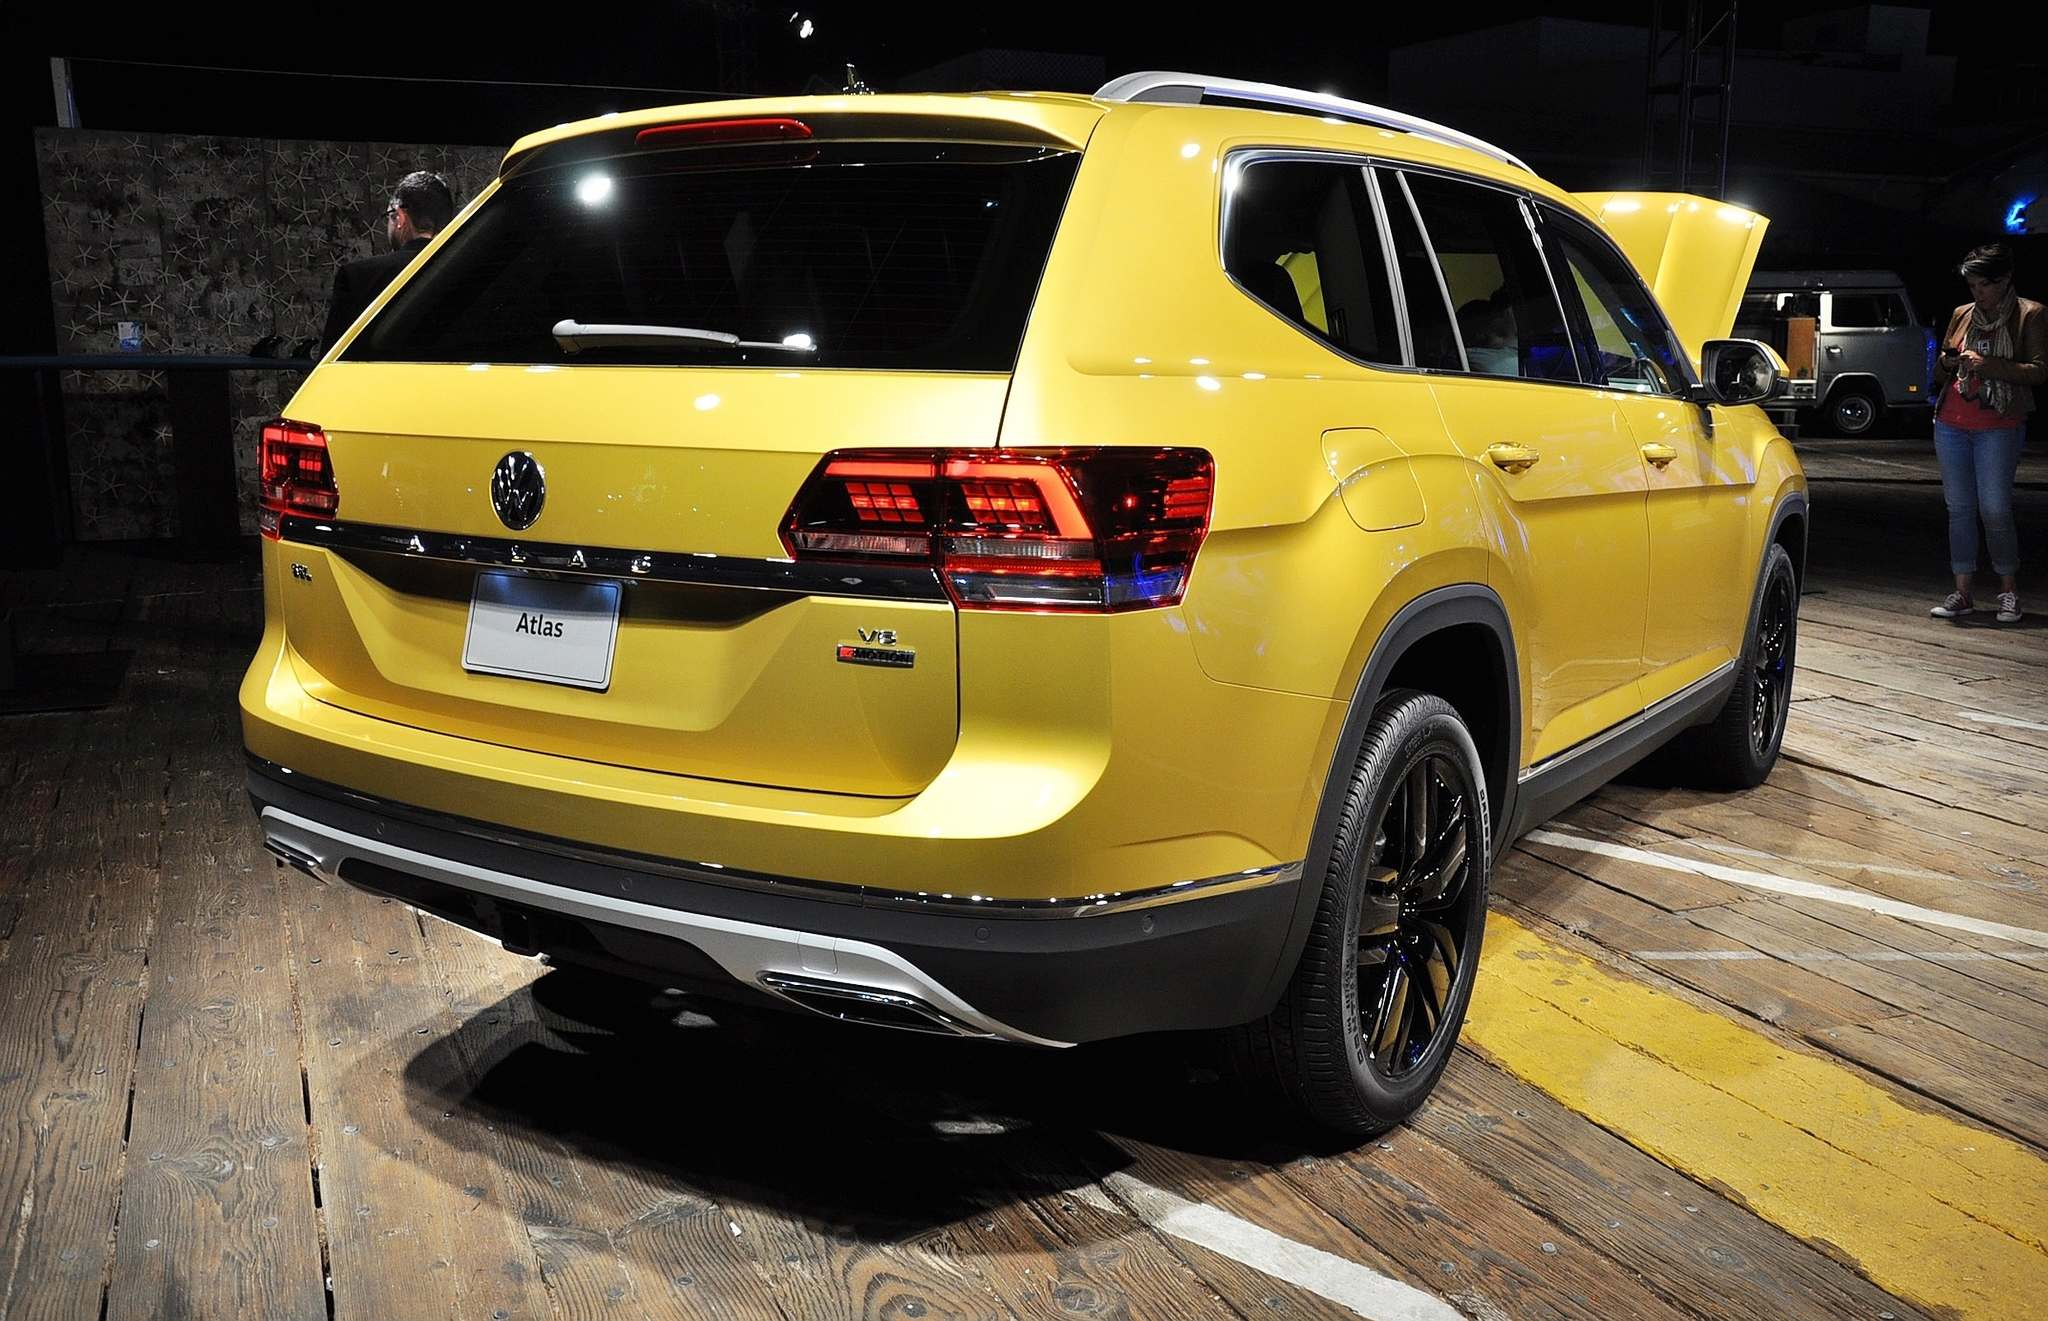 DEREK McNAUGHTON / POST MEDIA NETWORKThe 2018 Volkswagen Atlas has only slightly less interior space than GMC's Acadia, putting it at No. 2 for interior space in the segment, says VW, edging out the Ford Explorer, Nissan Pathfinder and the Honda Pilot.